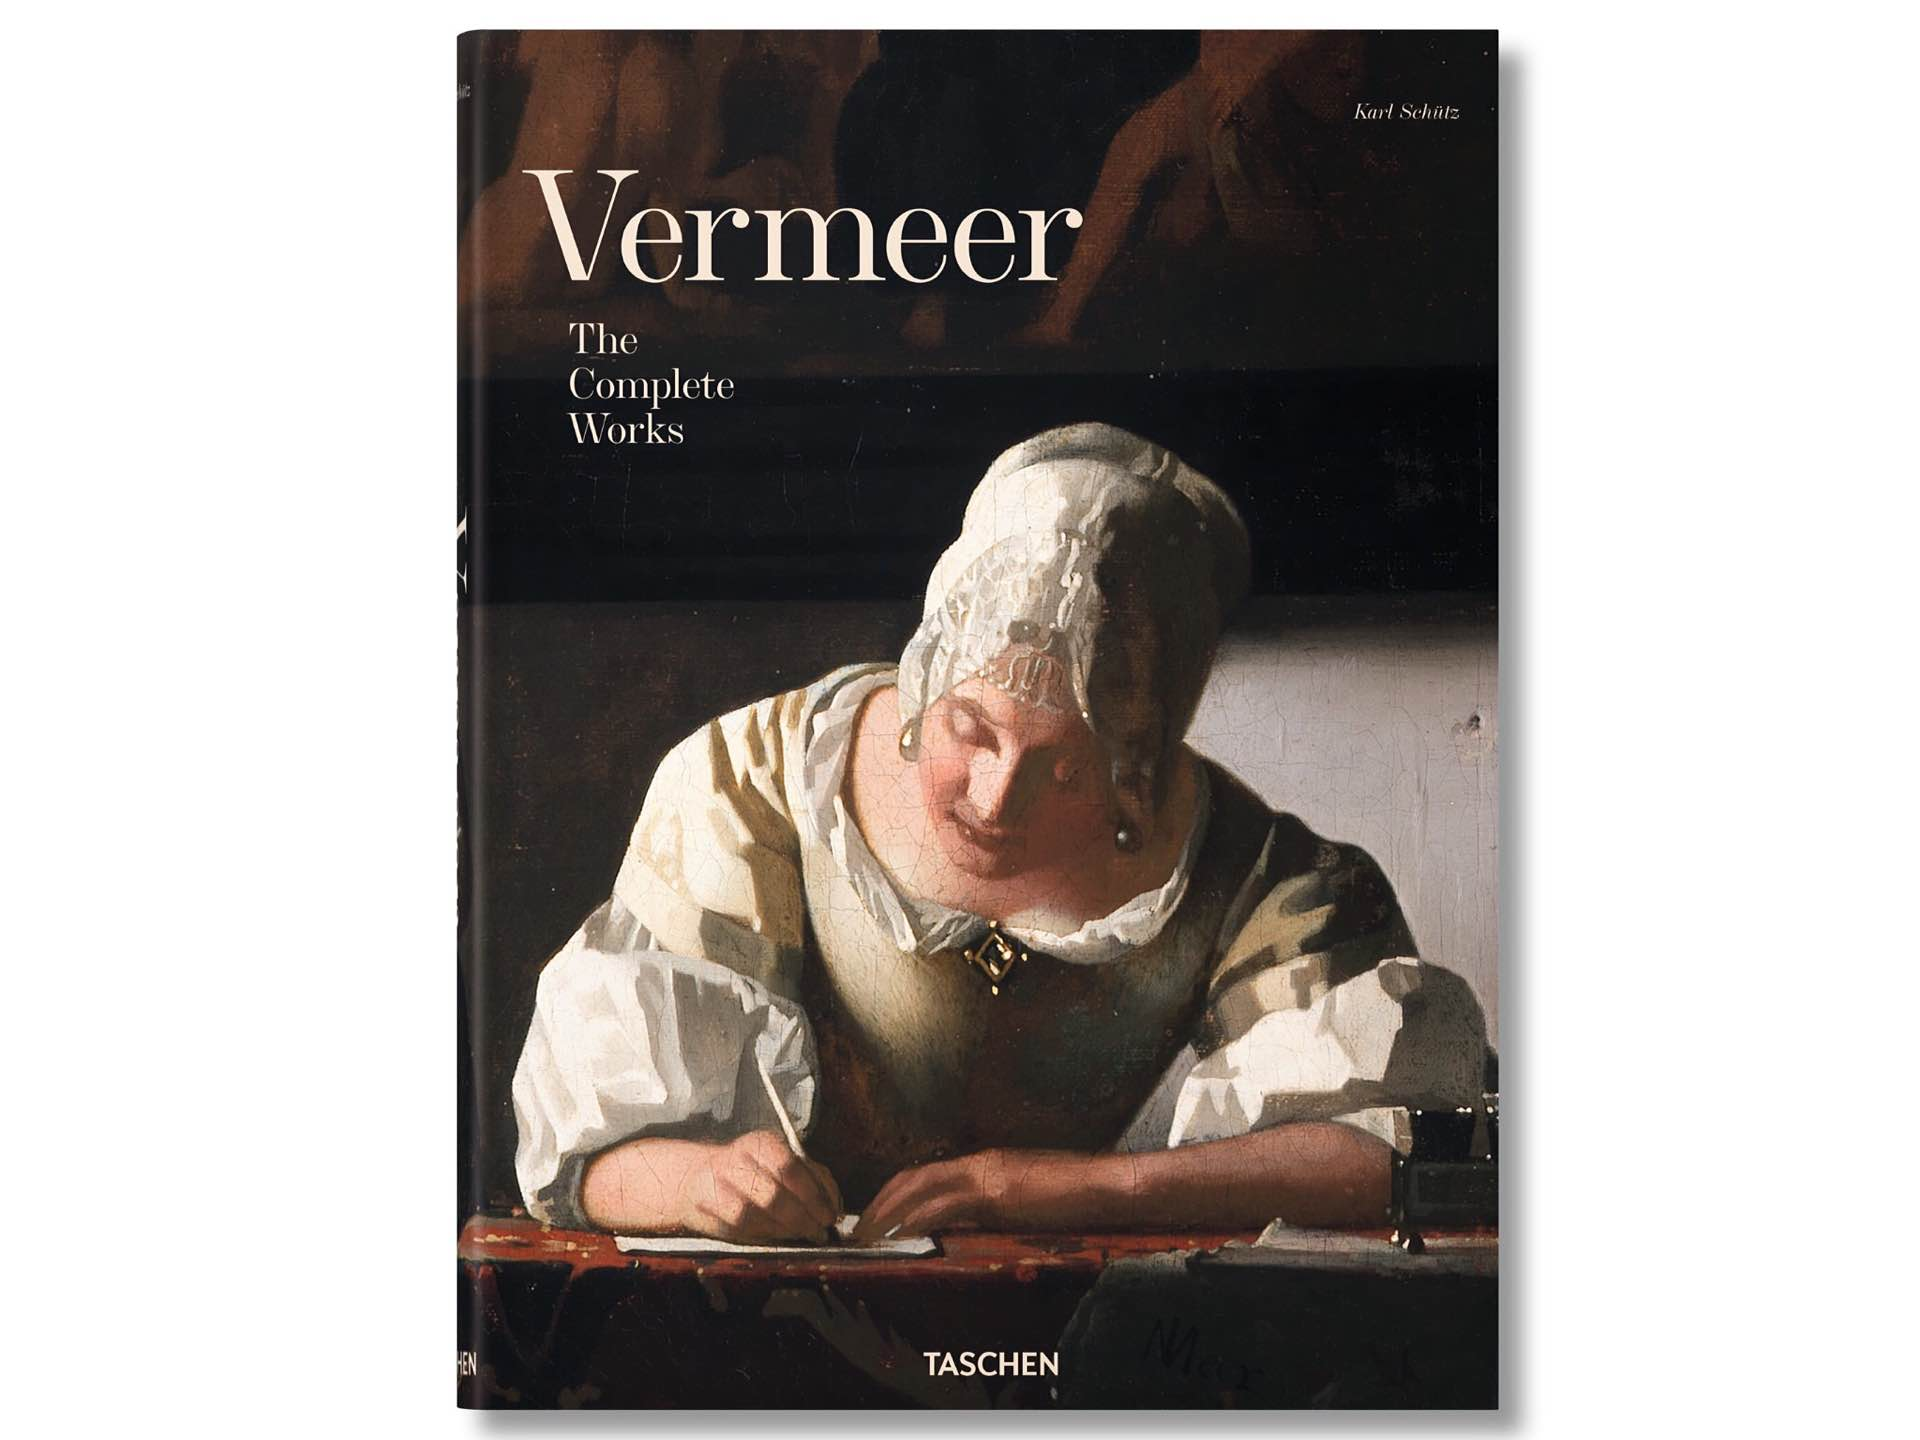 vermeer-the-complete-works-by-karl-schutz-and-taschen